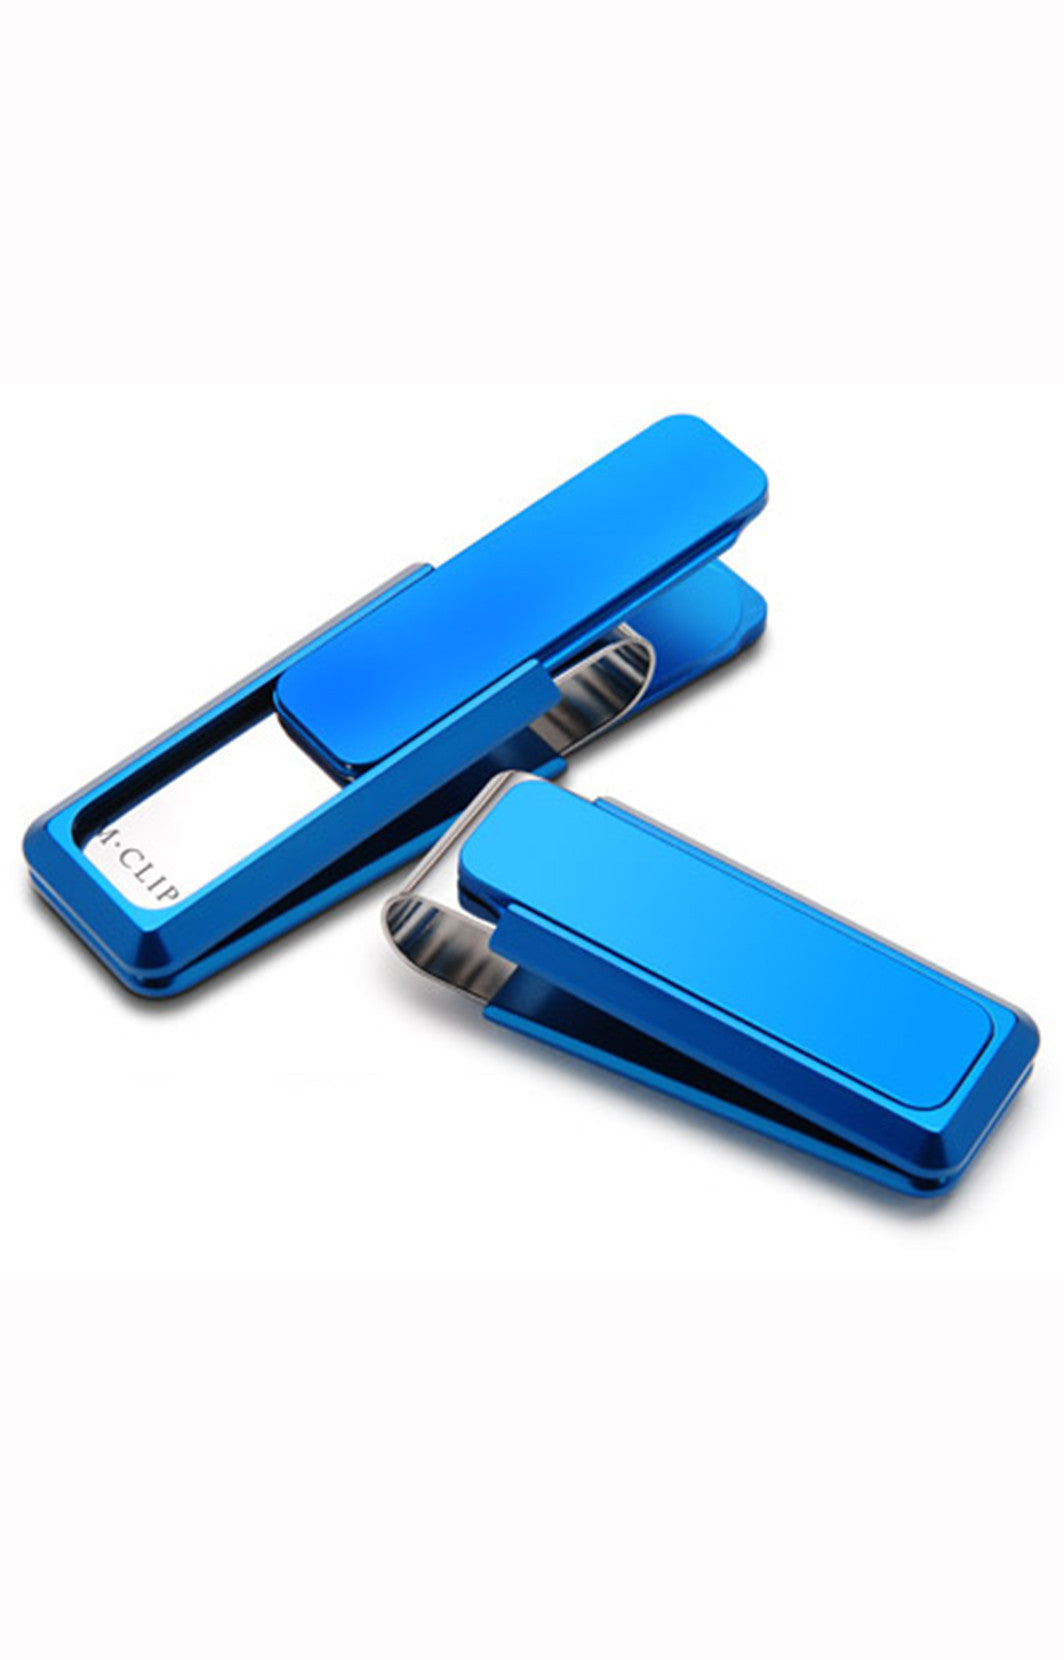 fashion clip, mens money clip, money clip, blue clip, blue money clip, aluminum money clip, m clip